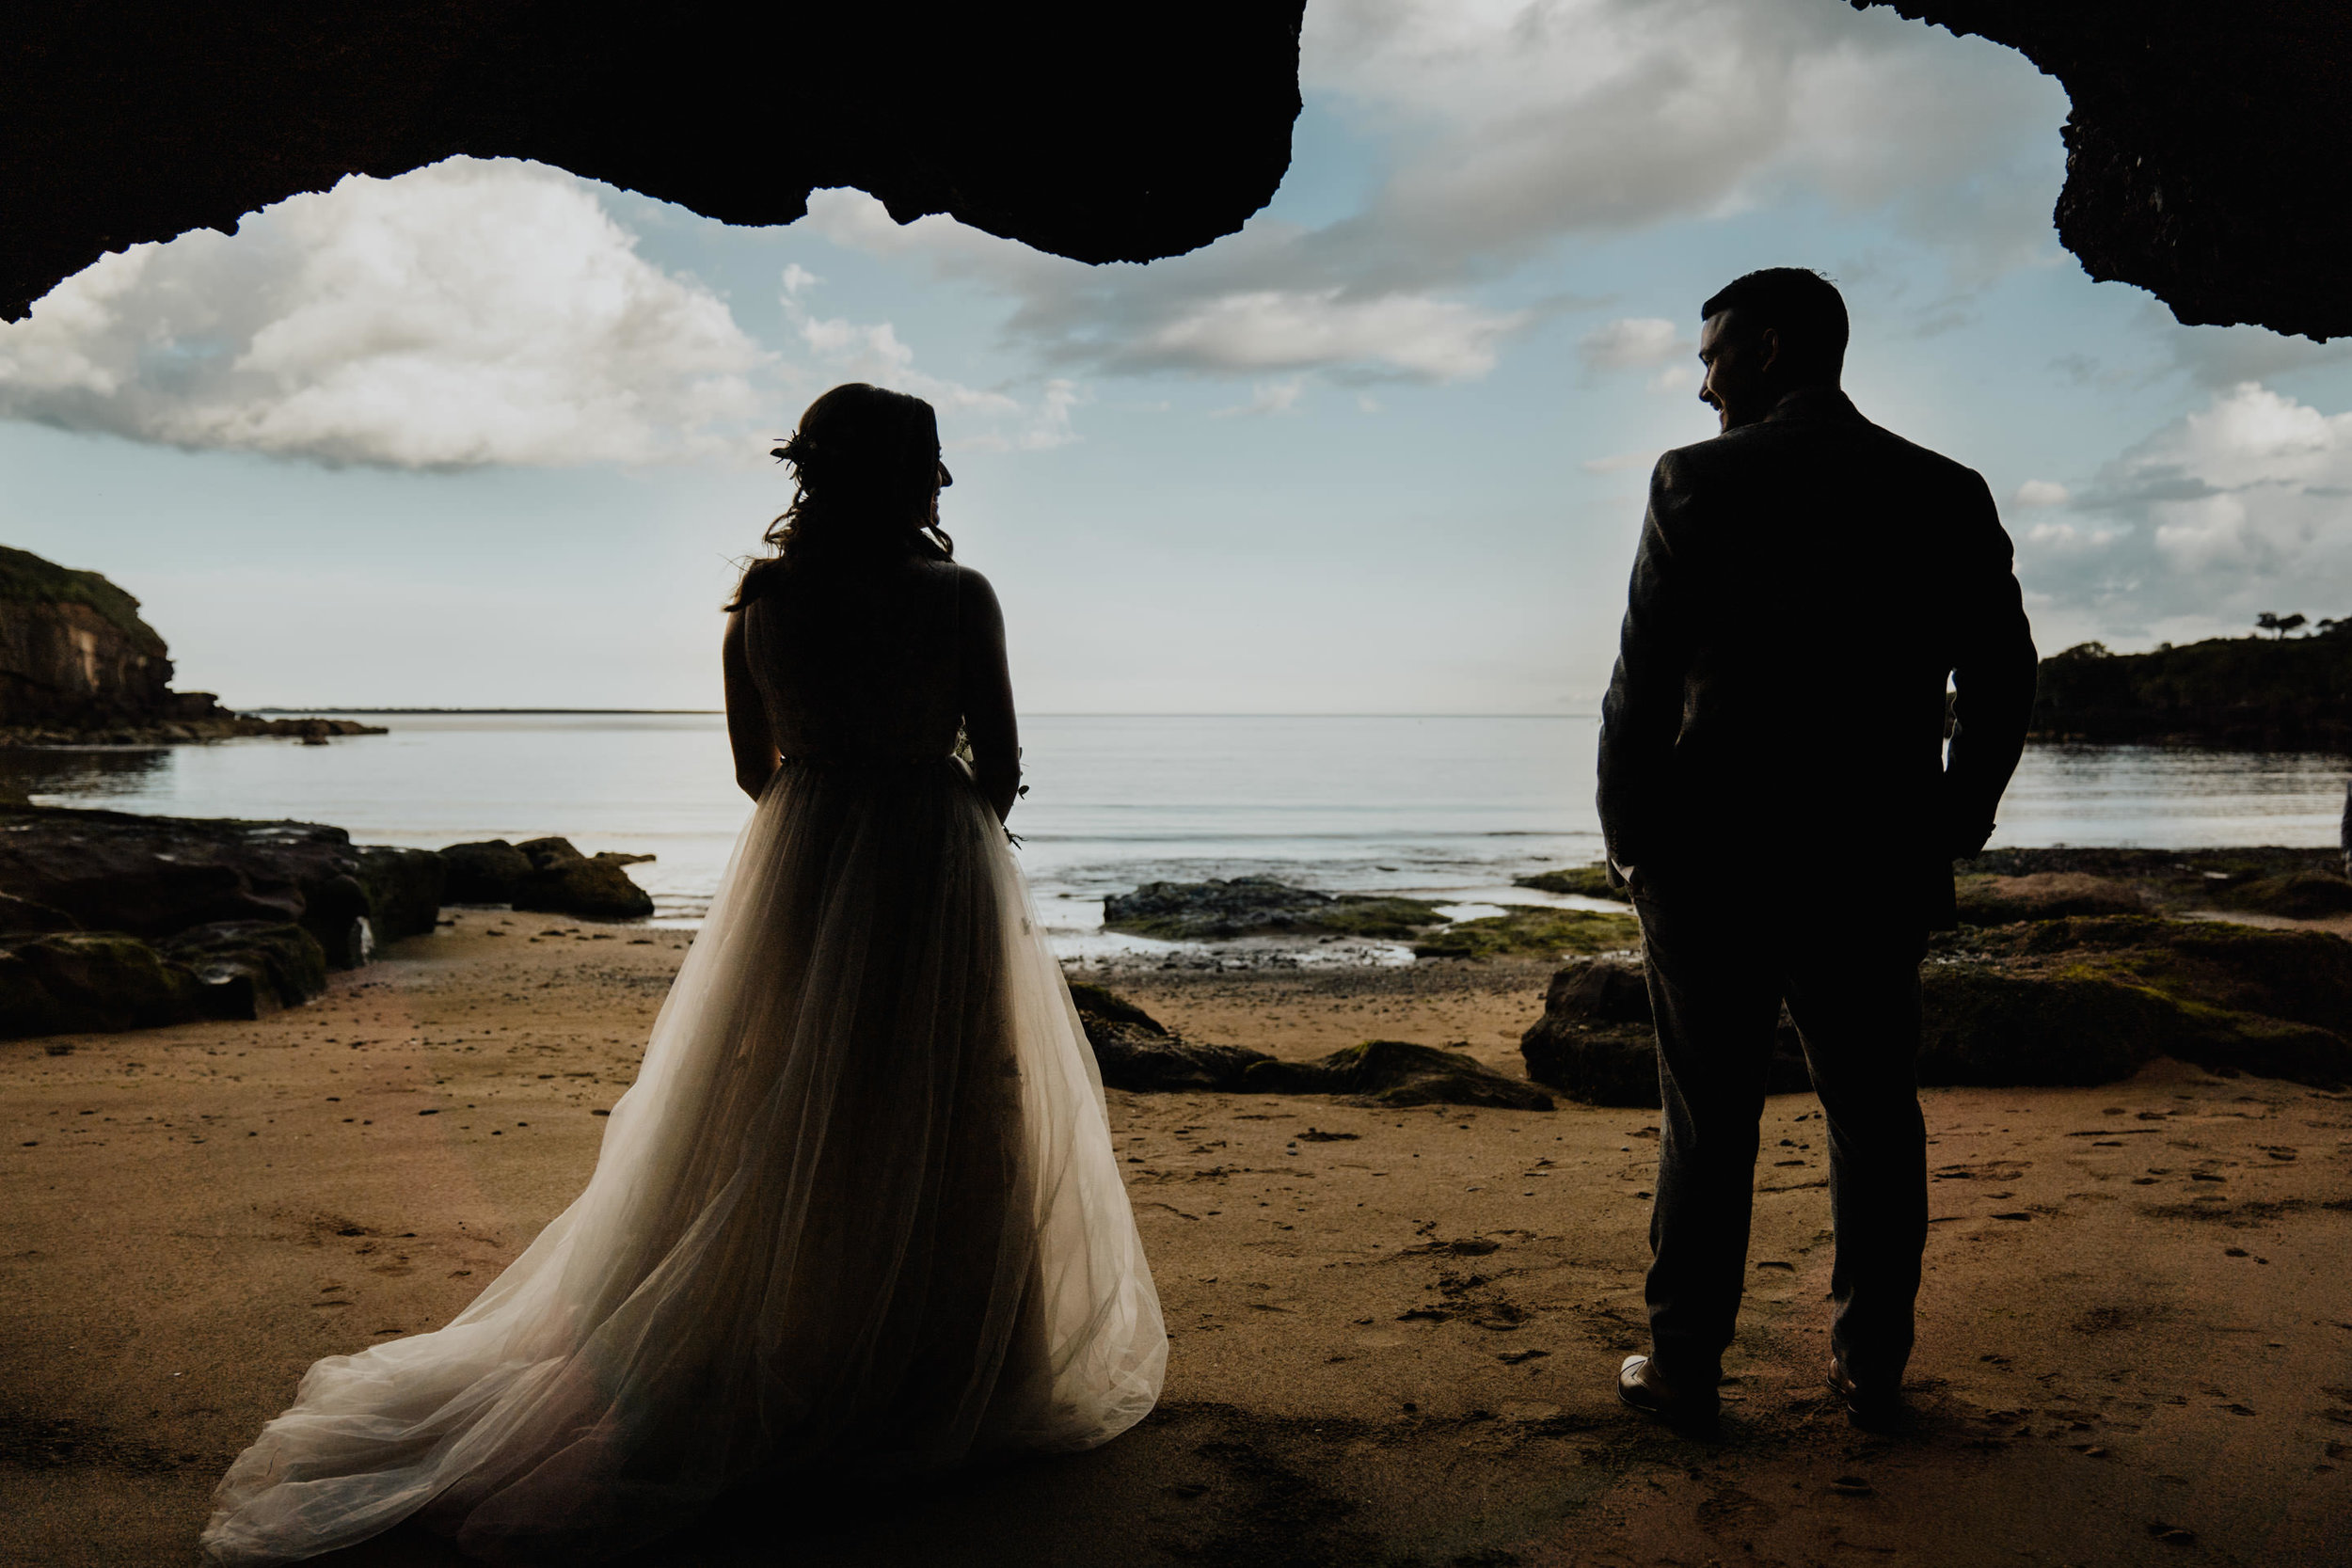 l-a-the-haven-dunmore-east-wedding-photographer-livia-figueiredo-25.jpg